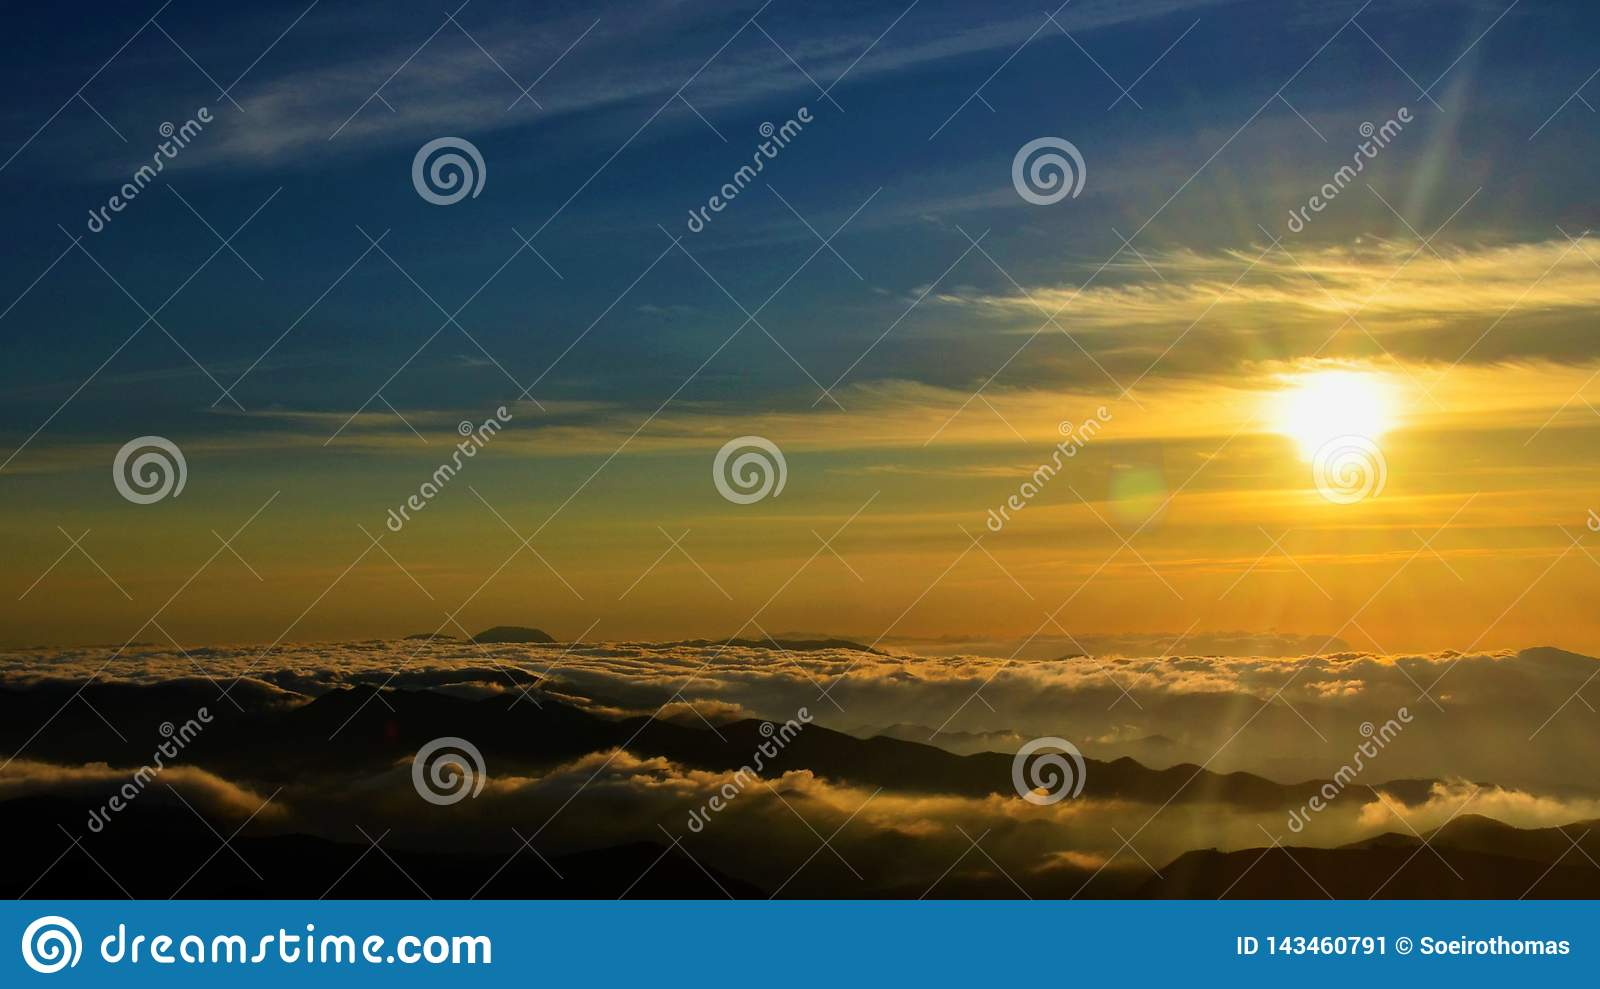 Sunset on a mountain climbing in Brazil